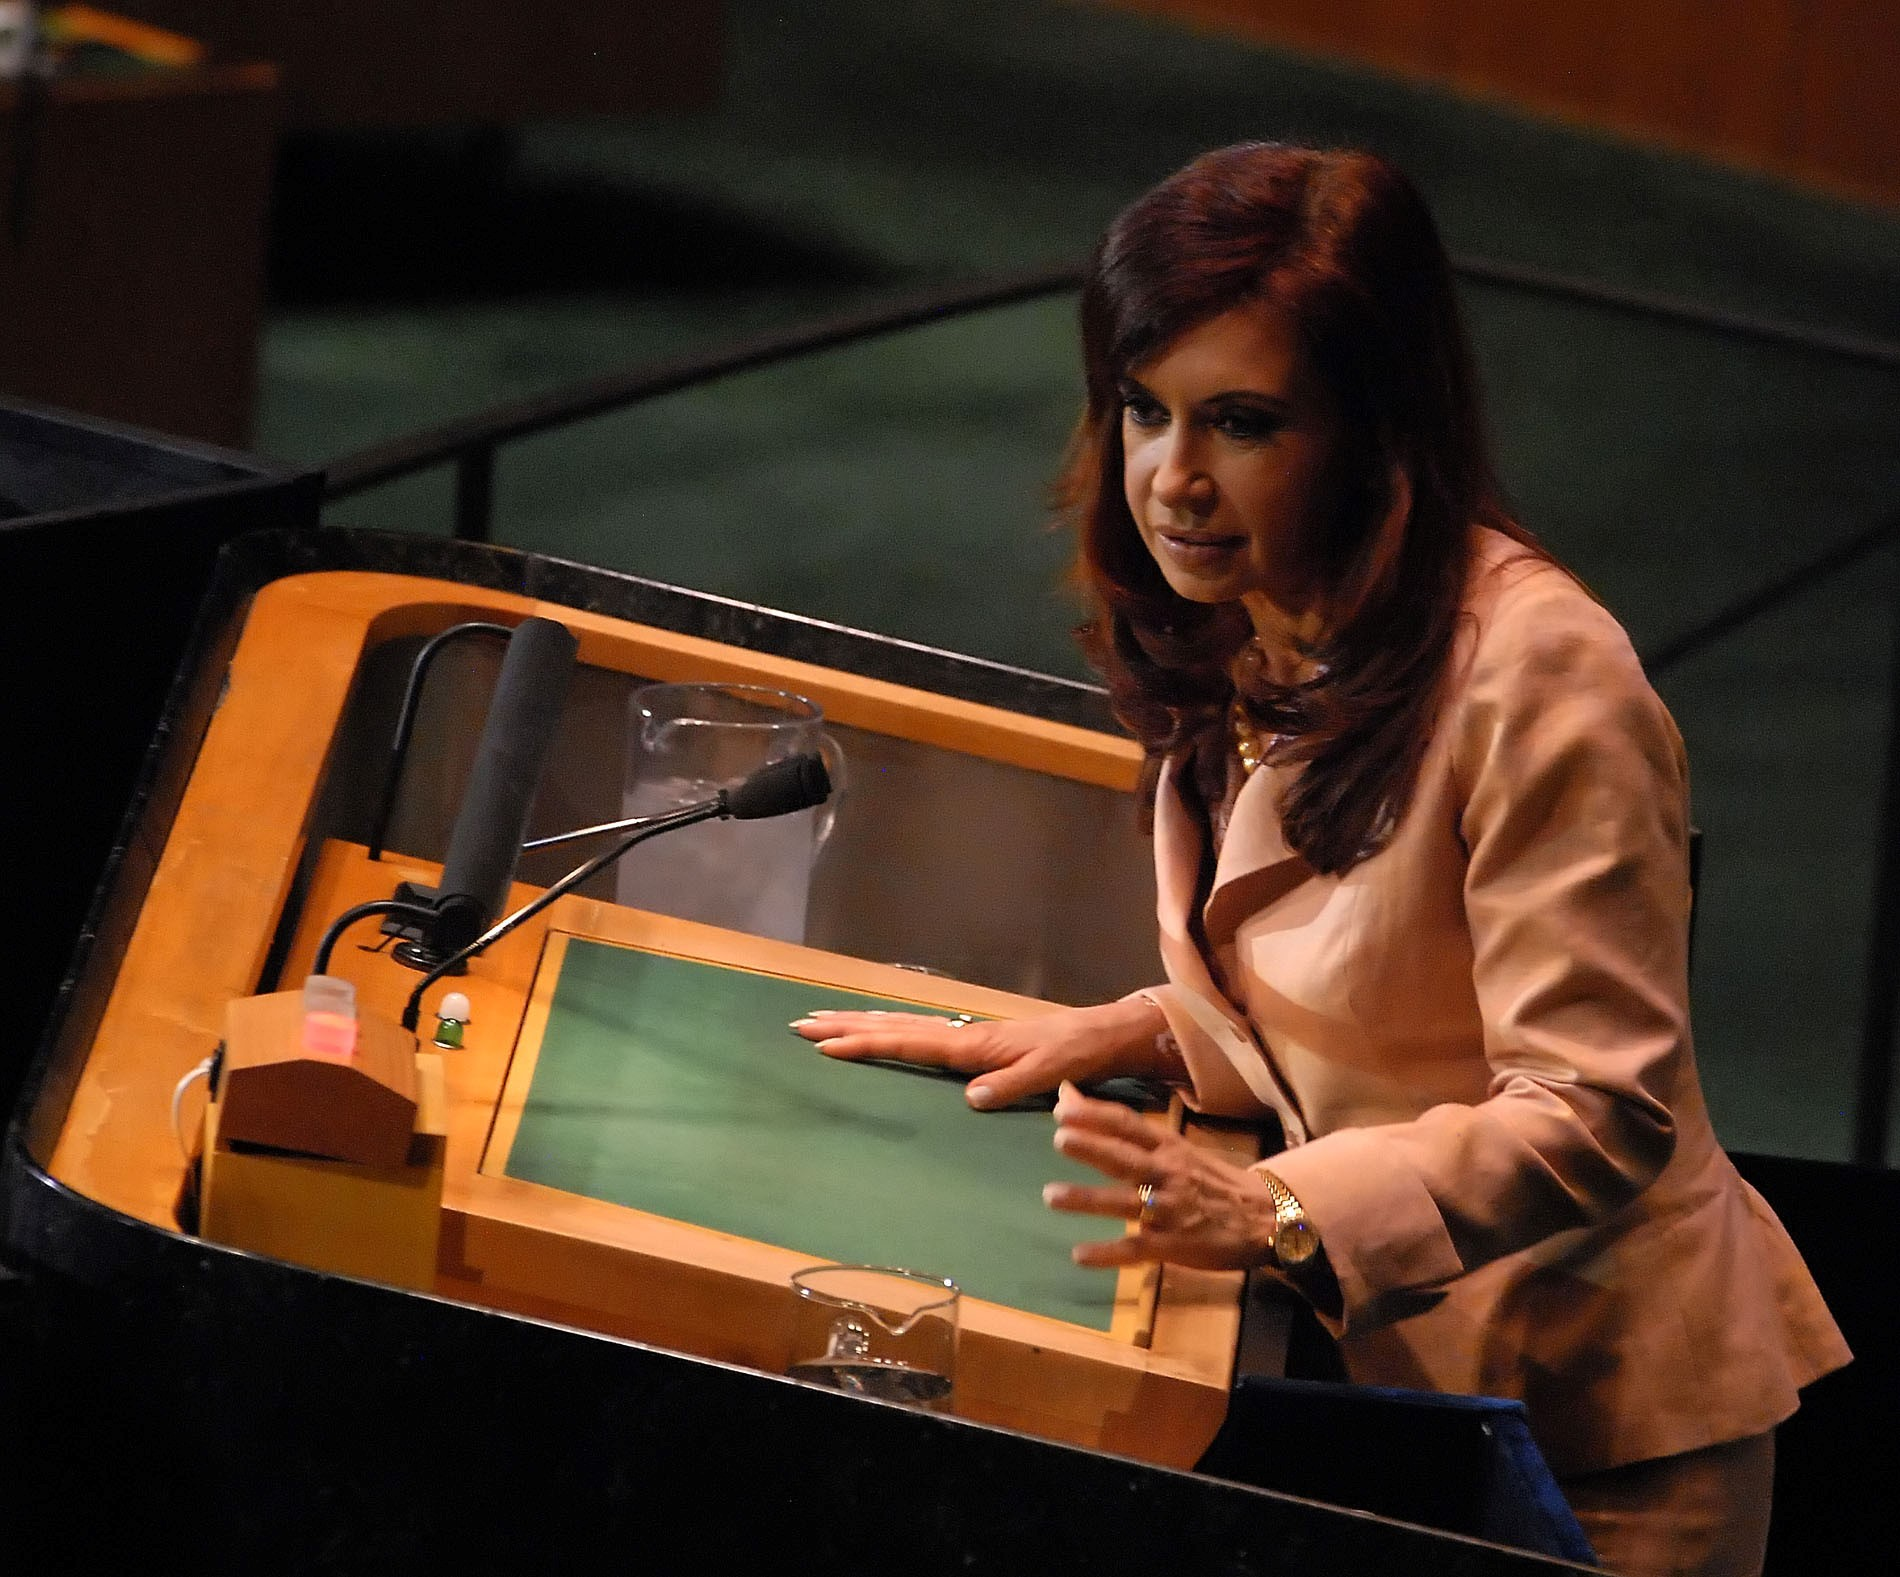 Media censor Argentina president's remarks at UN